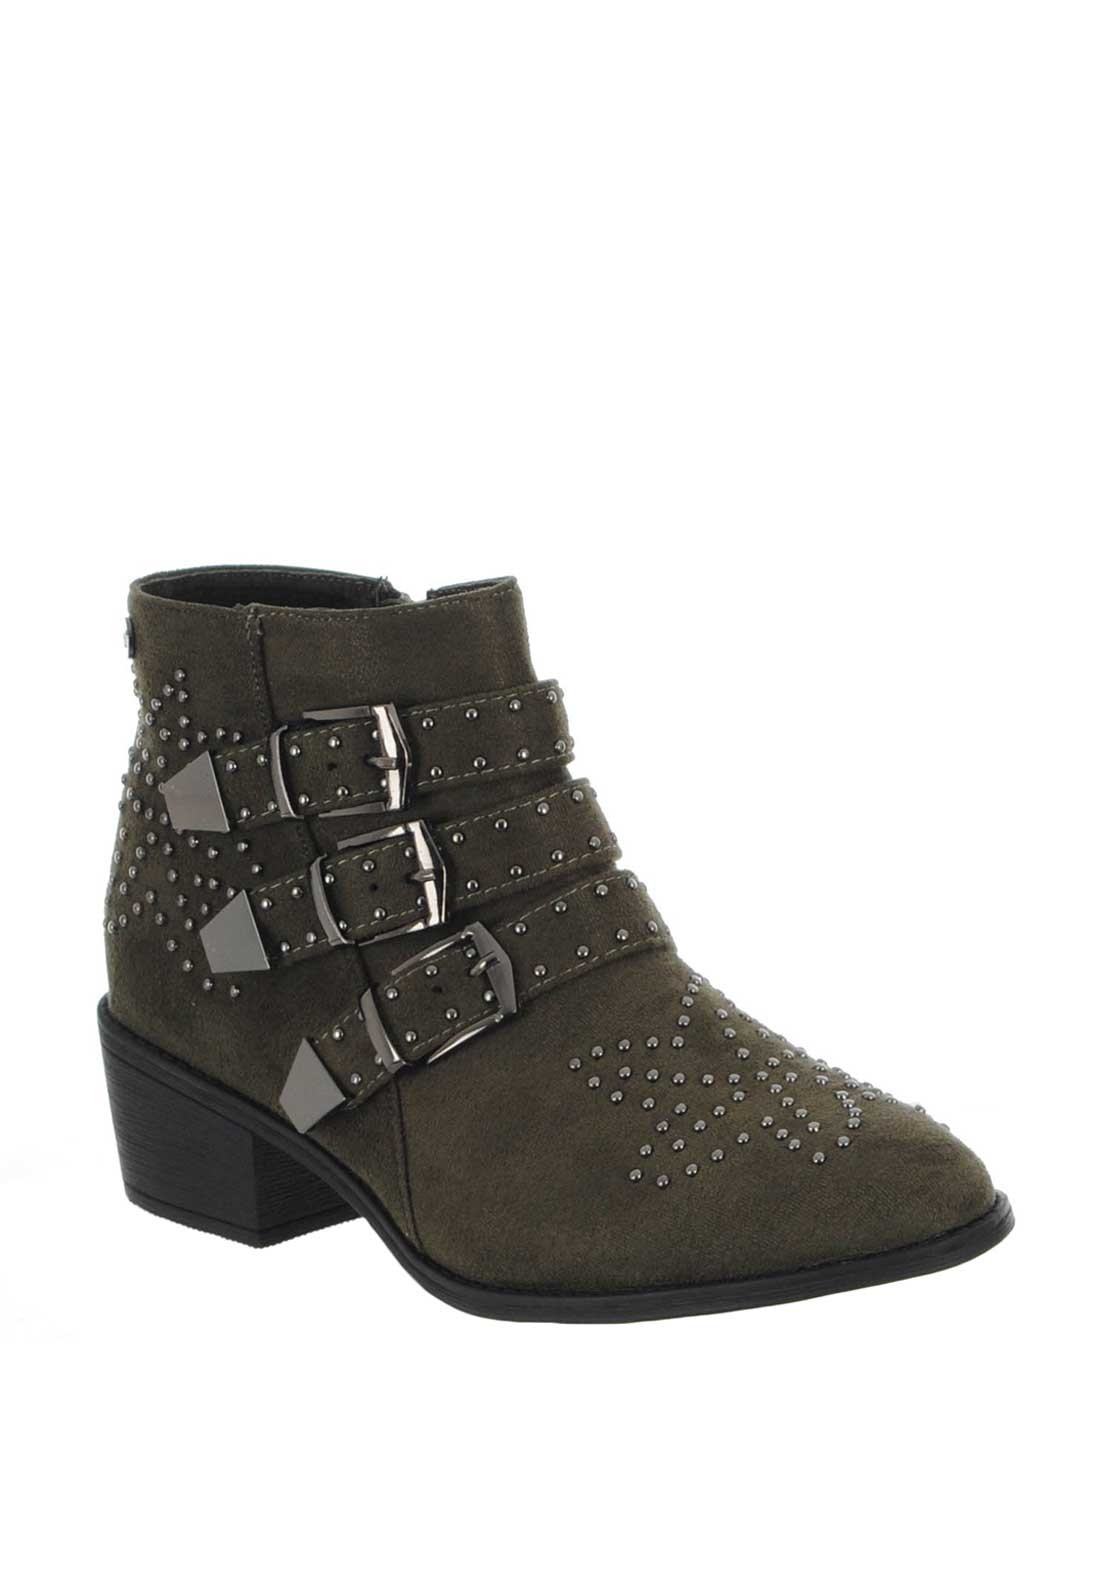 Xti Womens Studded Buckle Ankle Boots